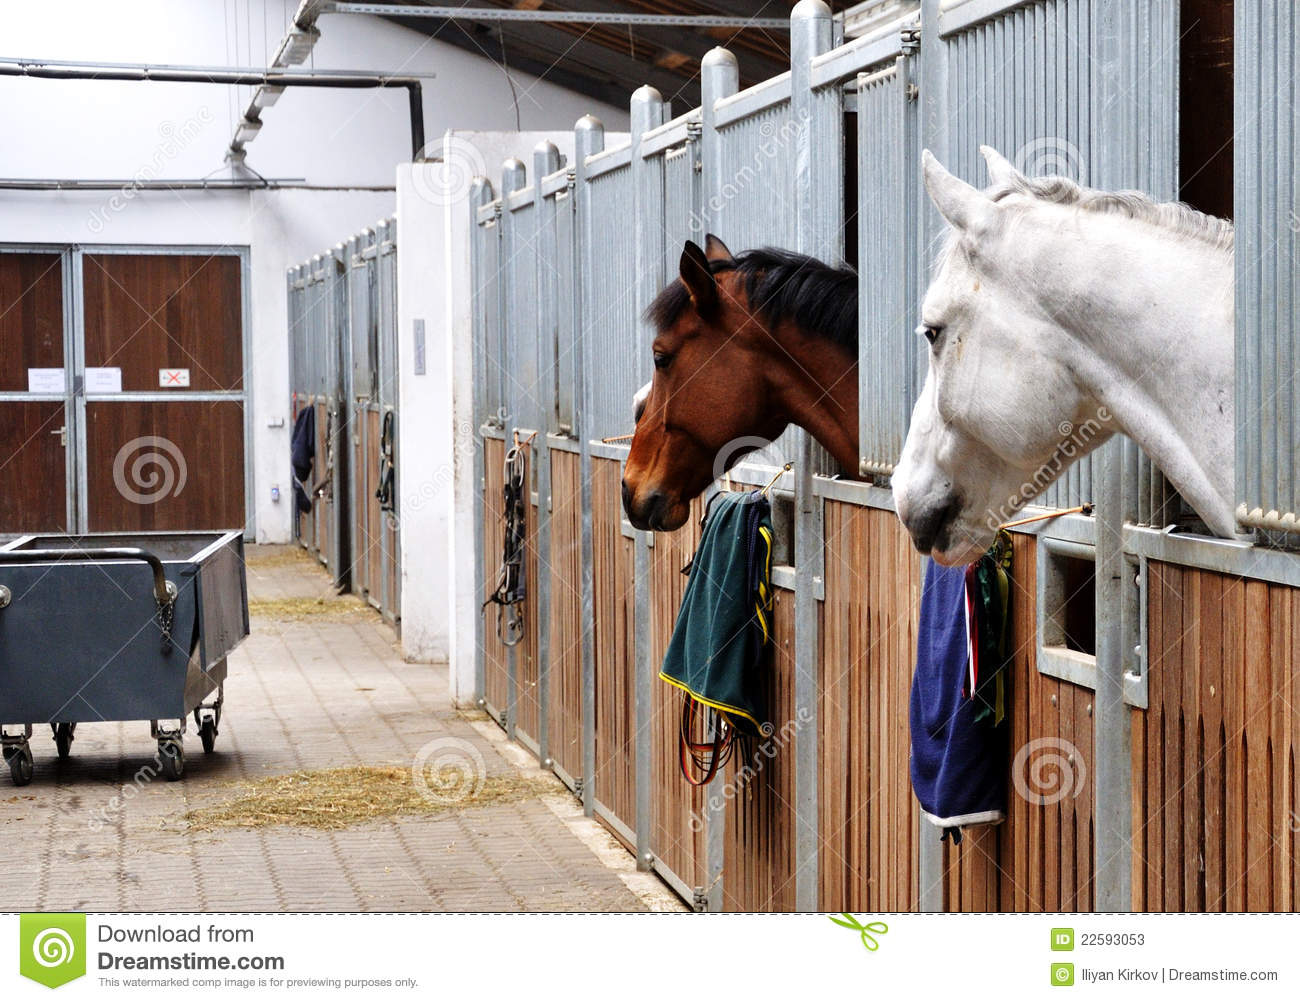 Feeding time for brown and white horse